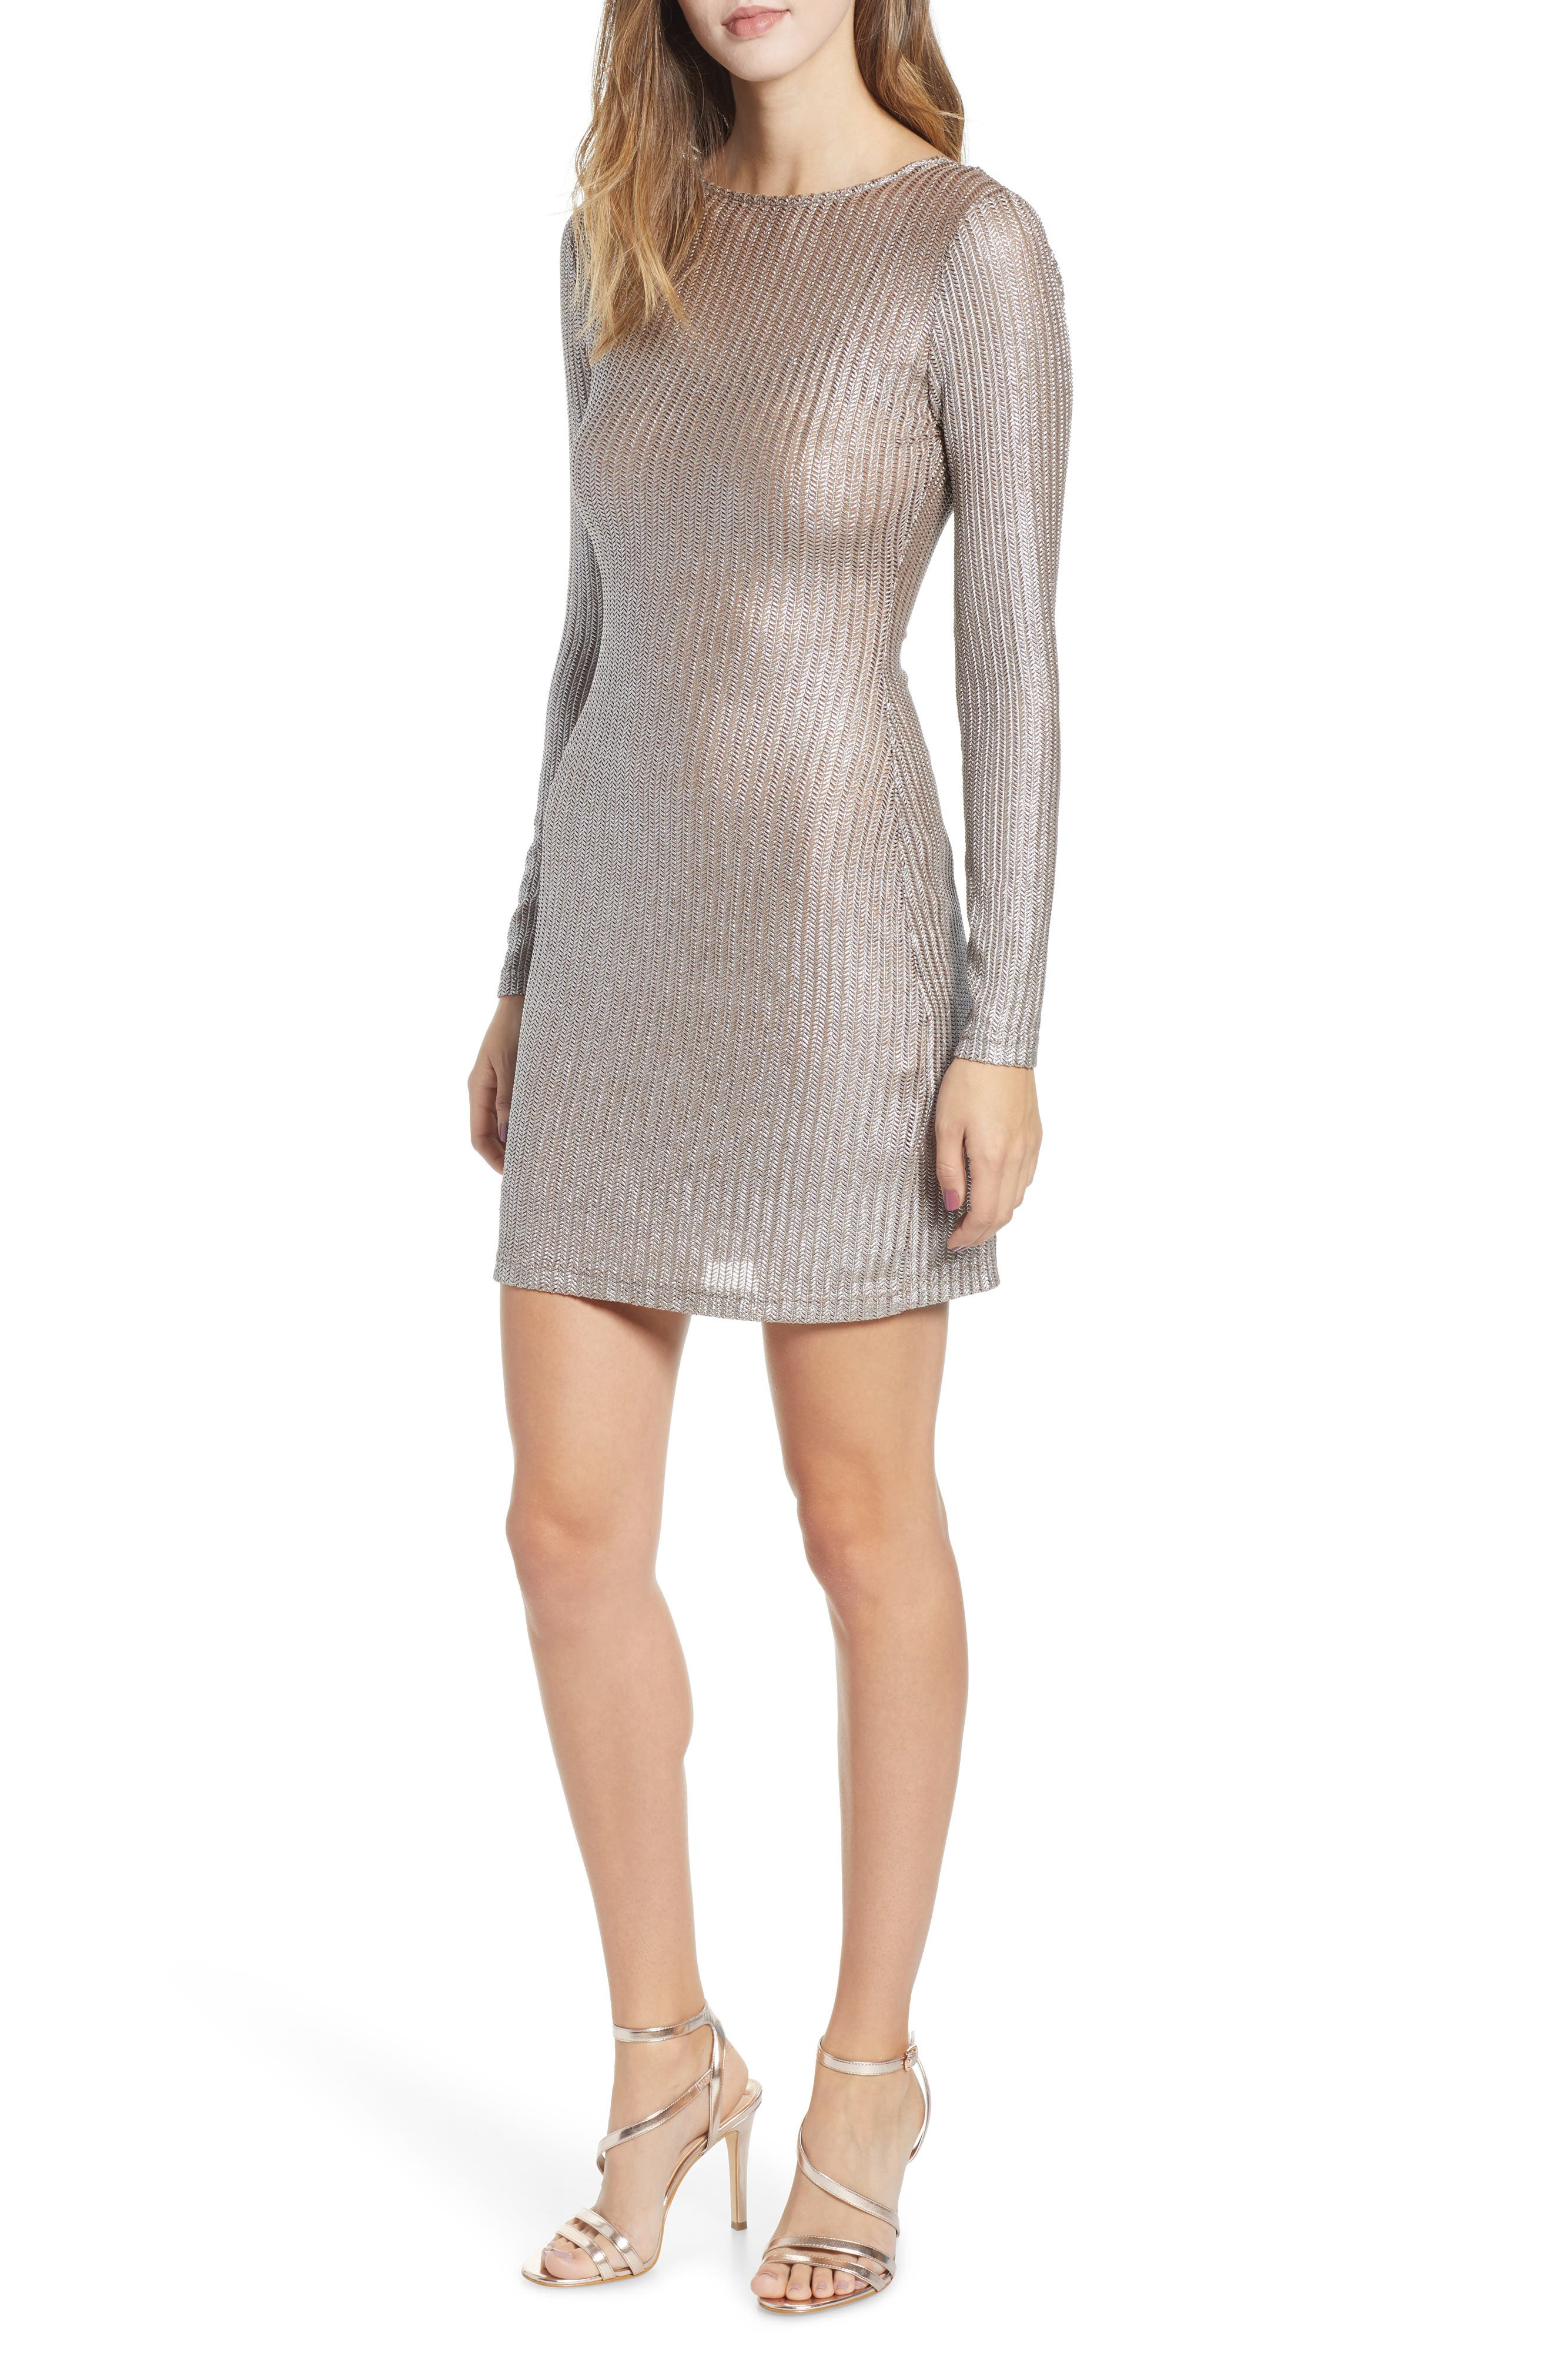 Wild Thoughts Metallic Dress,                         Main,                         color, PEWTER